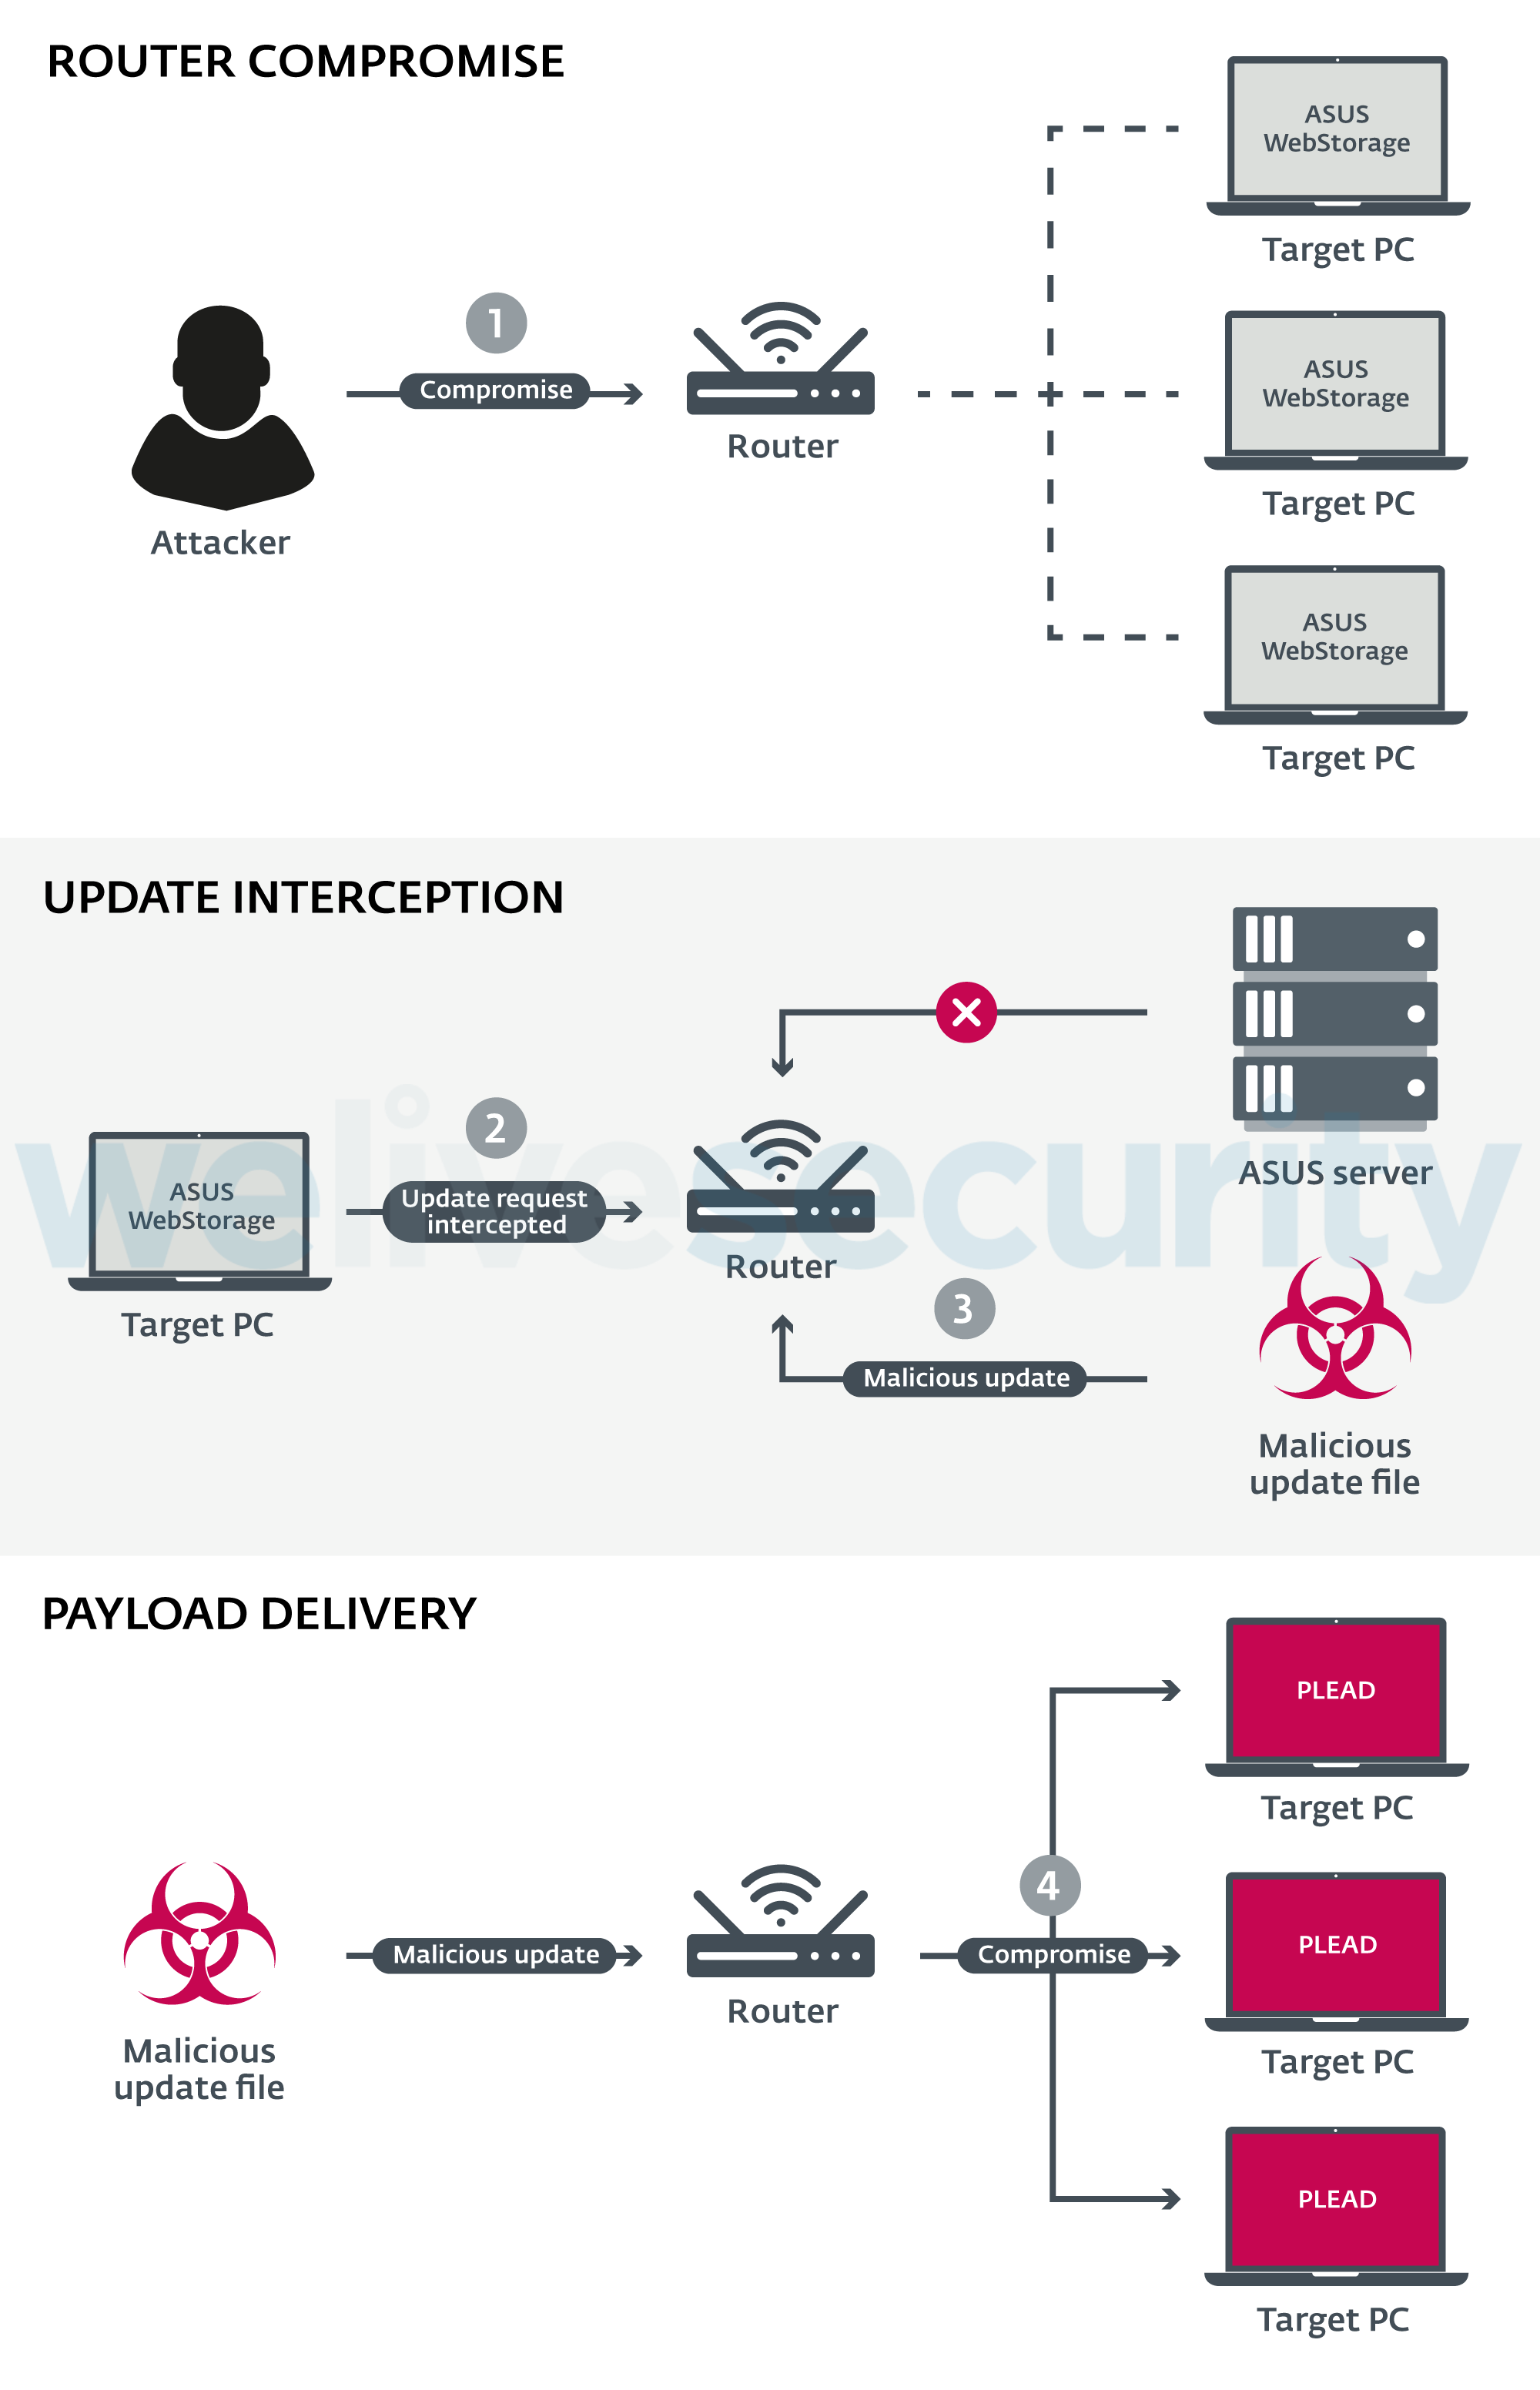 Plead malware distributed via MitM attacks at router level